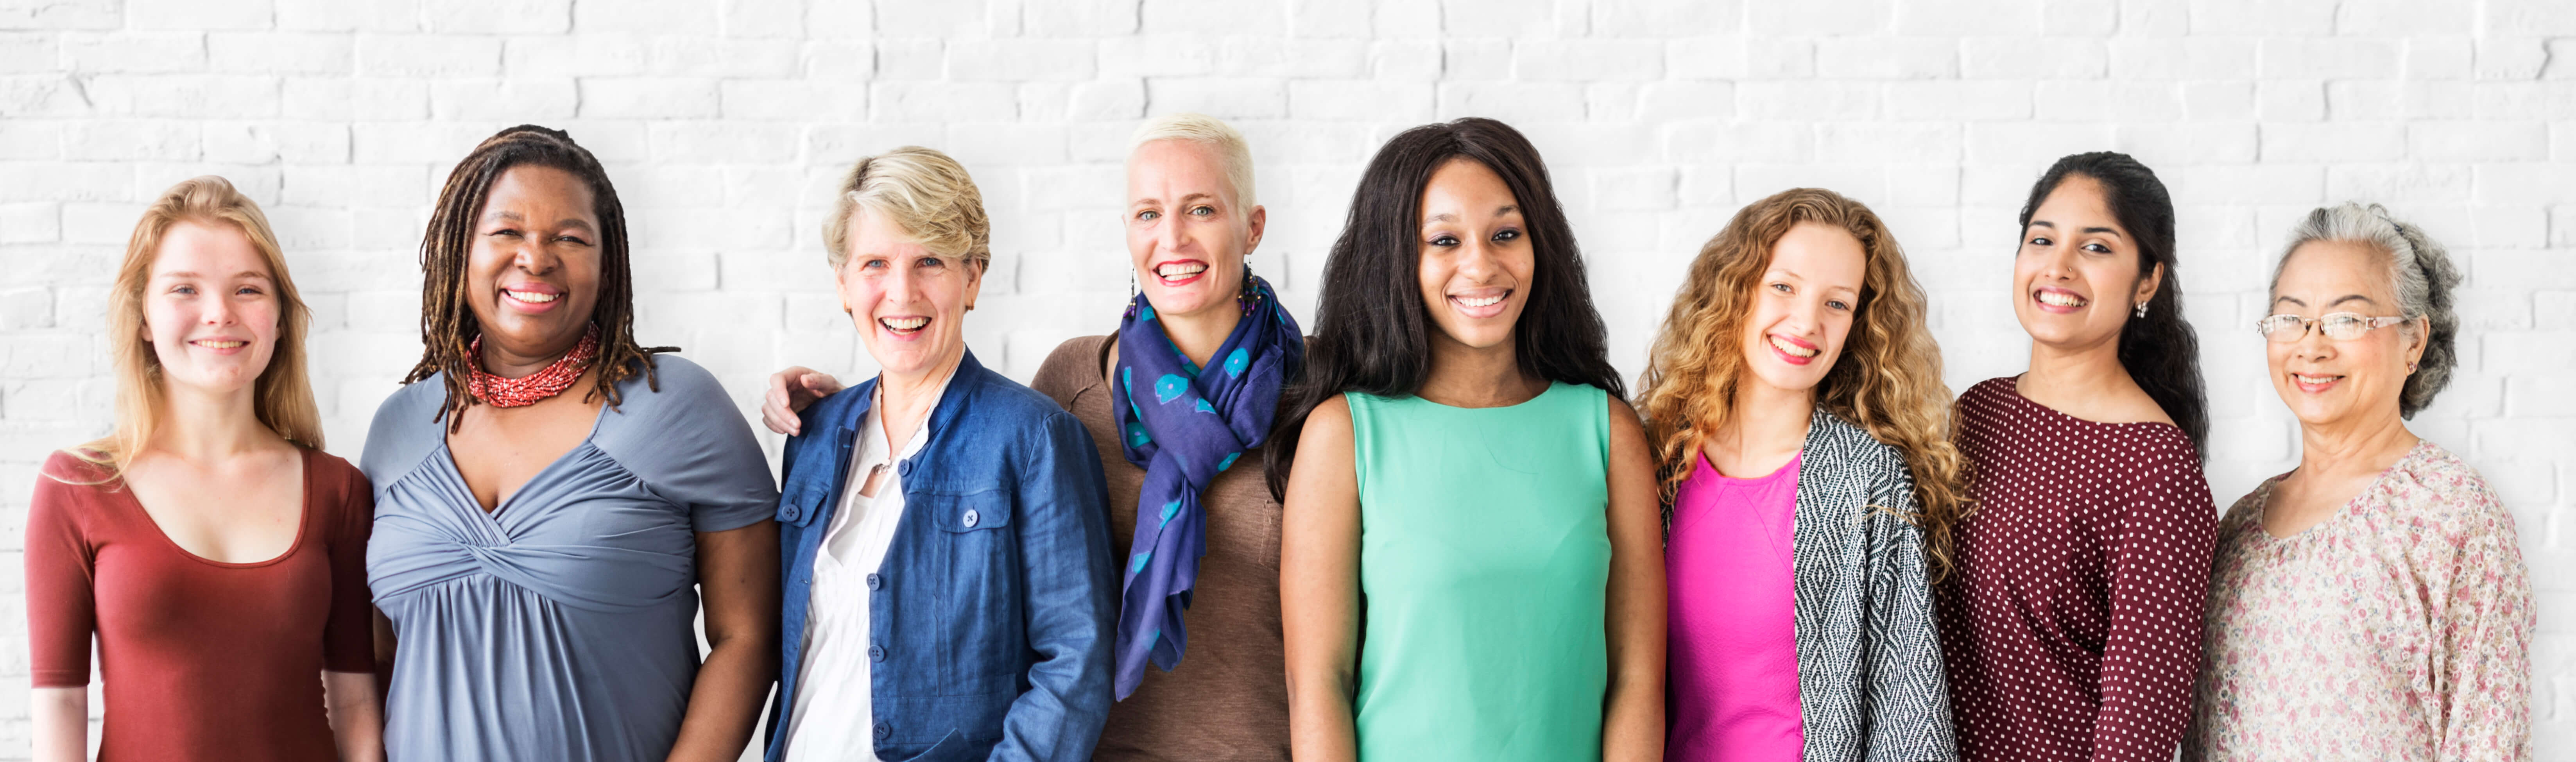 photo of diverse women standing shoulder to shoulder against white brick wall